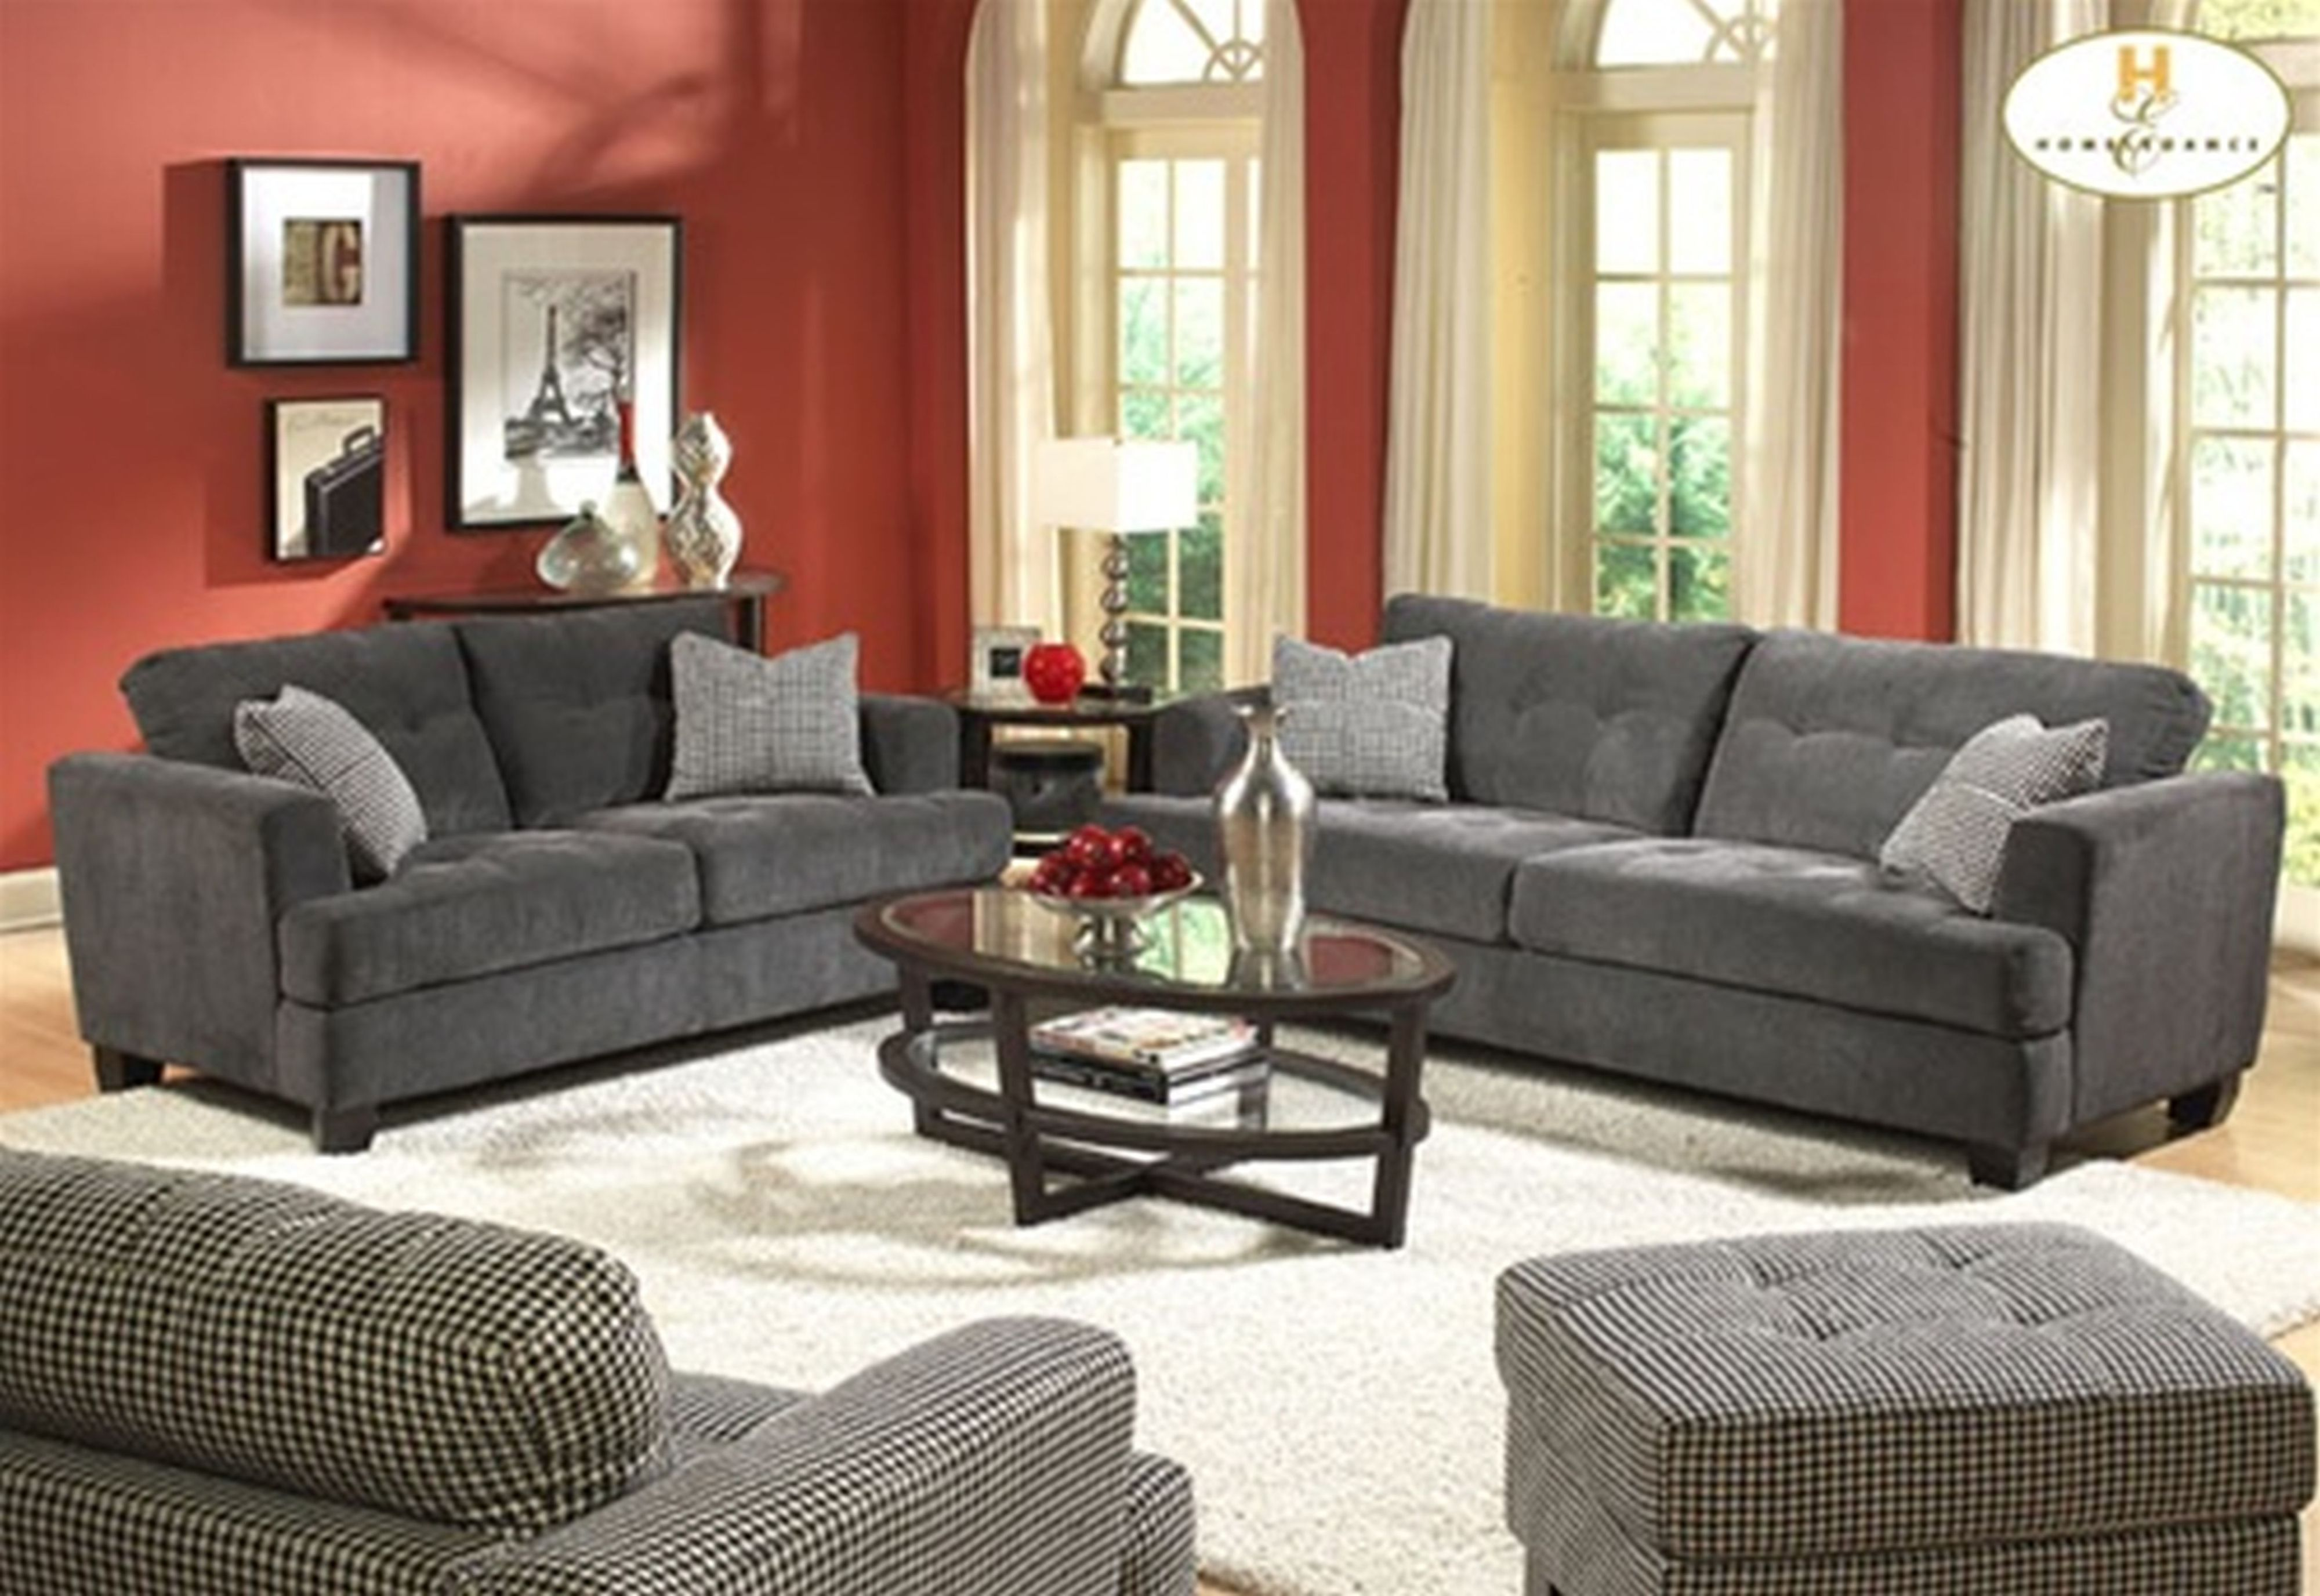 spectacular grey and yellow decorations. Living Room Gray Color Schemes Decorating Design Grey Colour Ideas For Rooms  Trends Scheme Spectacular Red